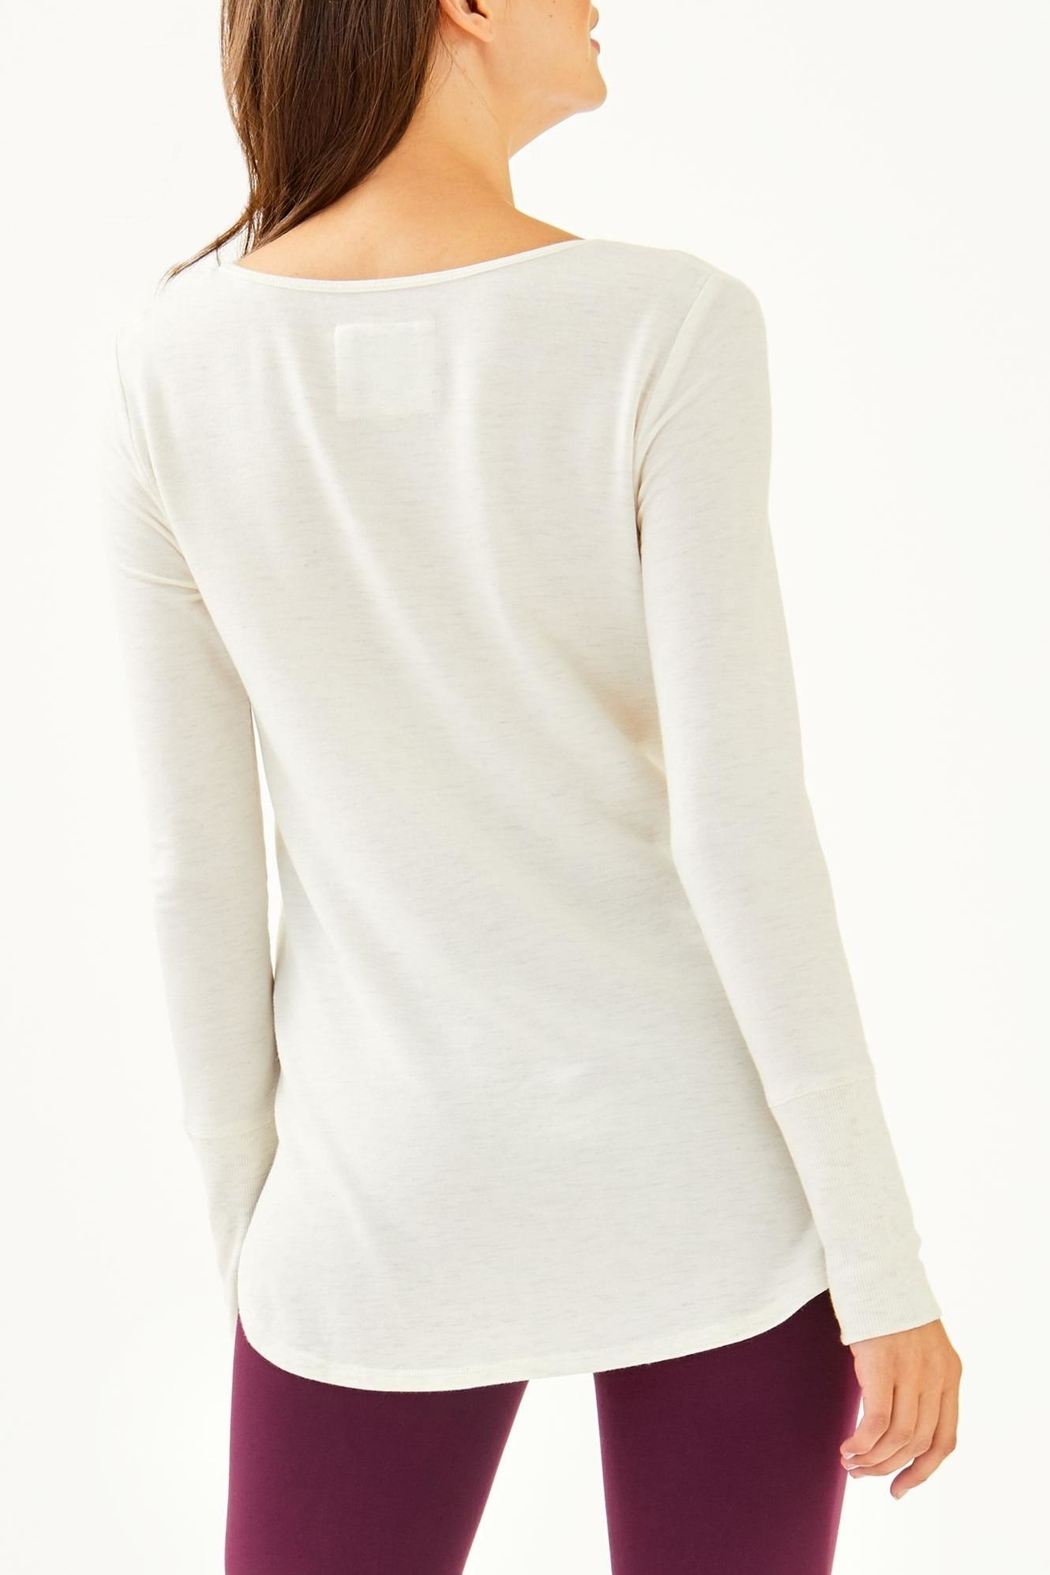 Lilly Pulitzer Kerah Lounge Top - Front Full Image